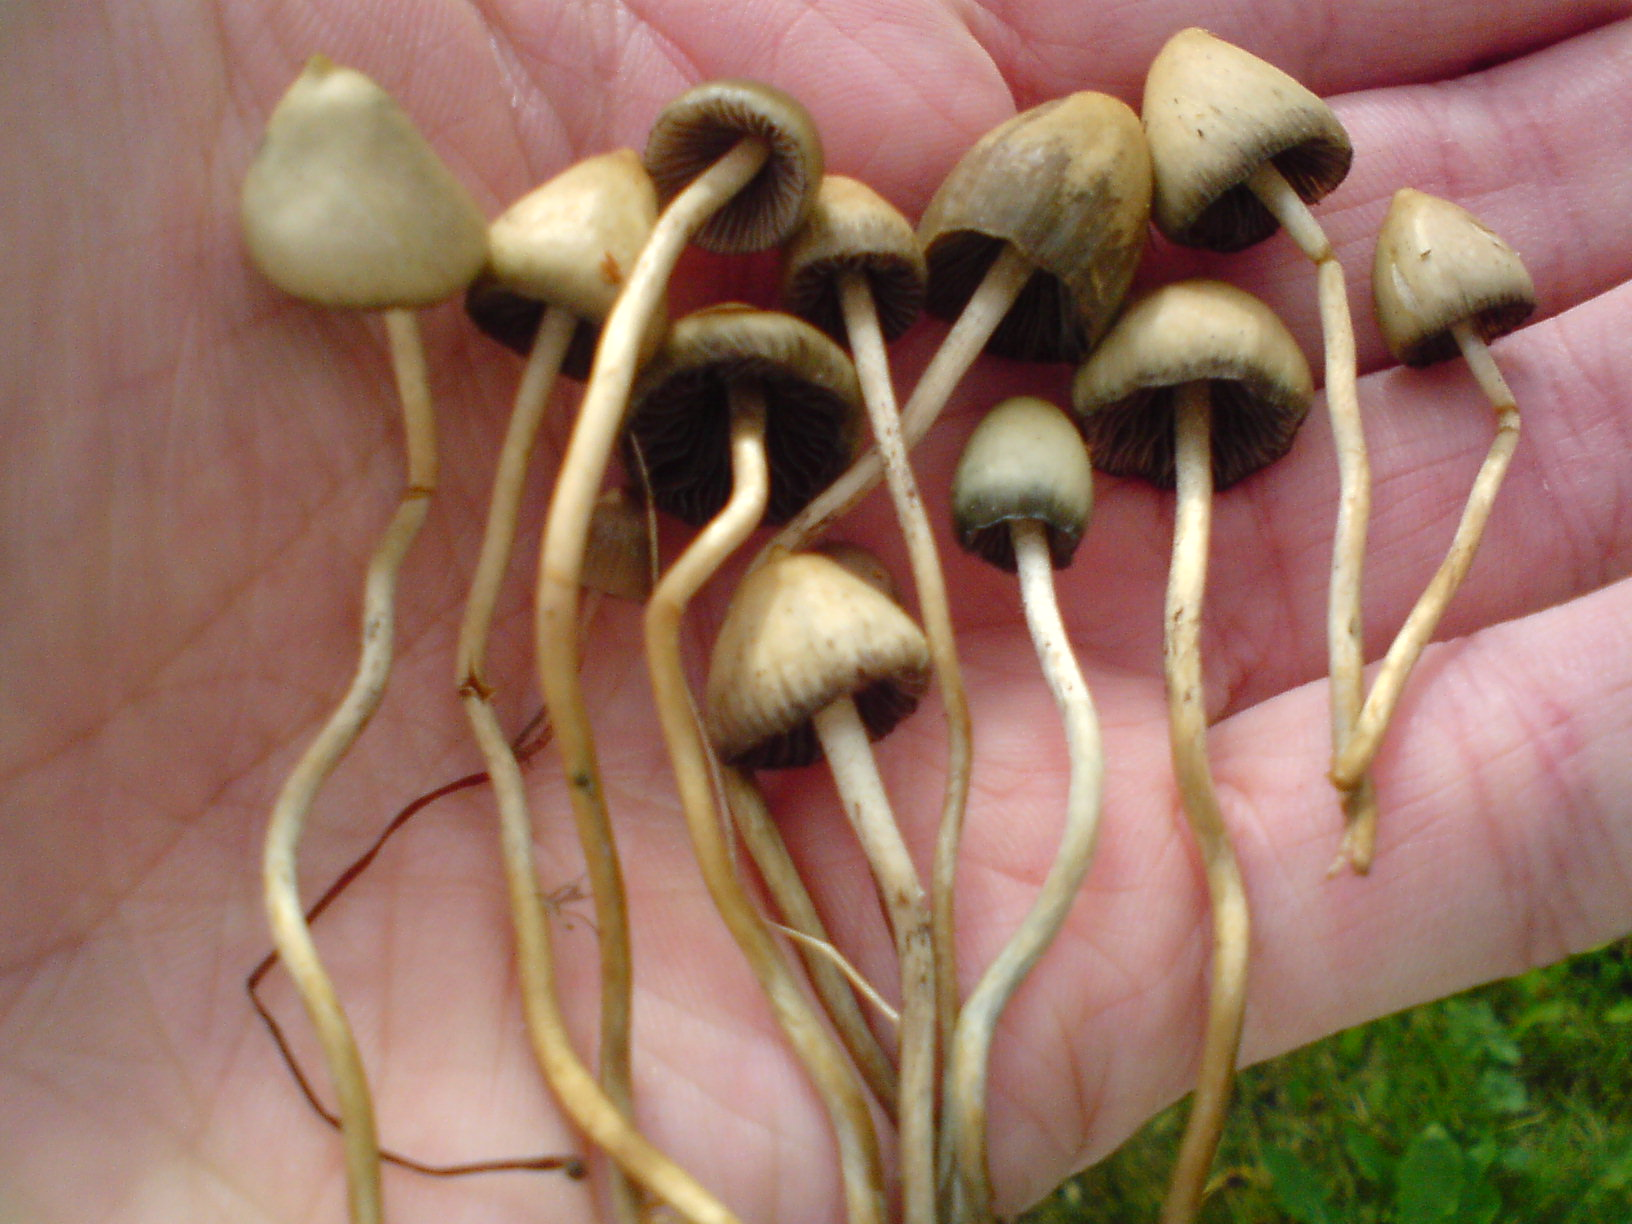 effects of psilocybin psilocin mushrooms on the Effects on the body psilocybin and psilocin are absorbed by the mucous membranes of the mouth and the stomach the effects are noticeable within 15 to 60 minutes and last between 2 and 8 hours the duration depends on the type of truffles or magic mushrooms you are taking, the quantity you have taken and your metabolism.